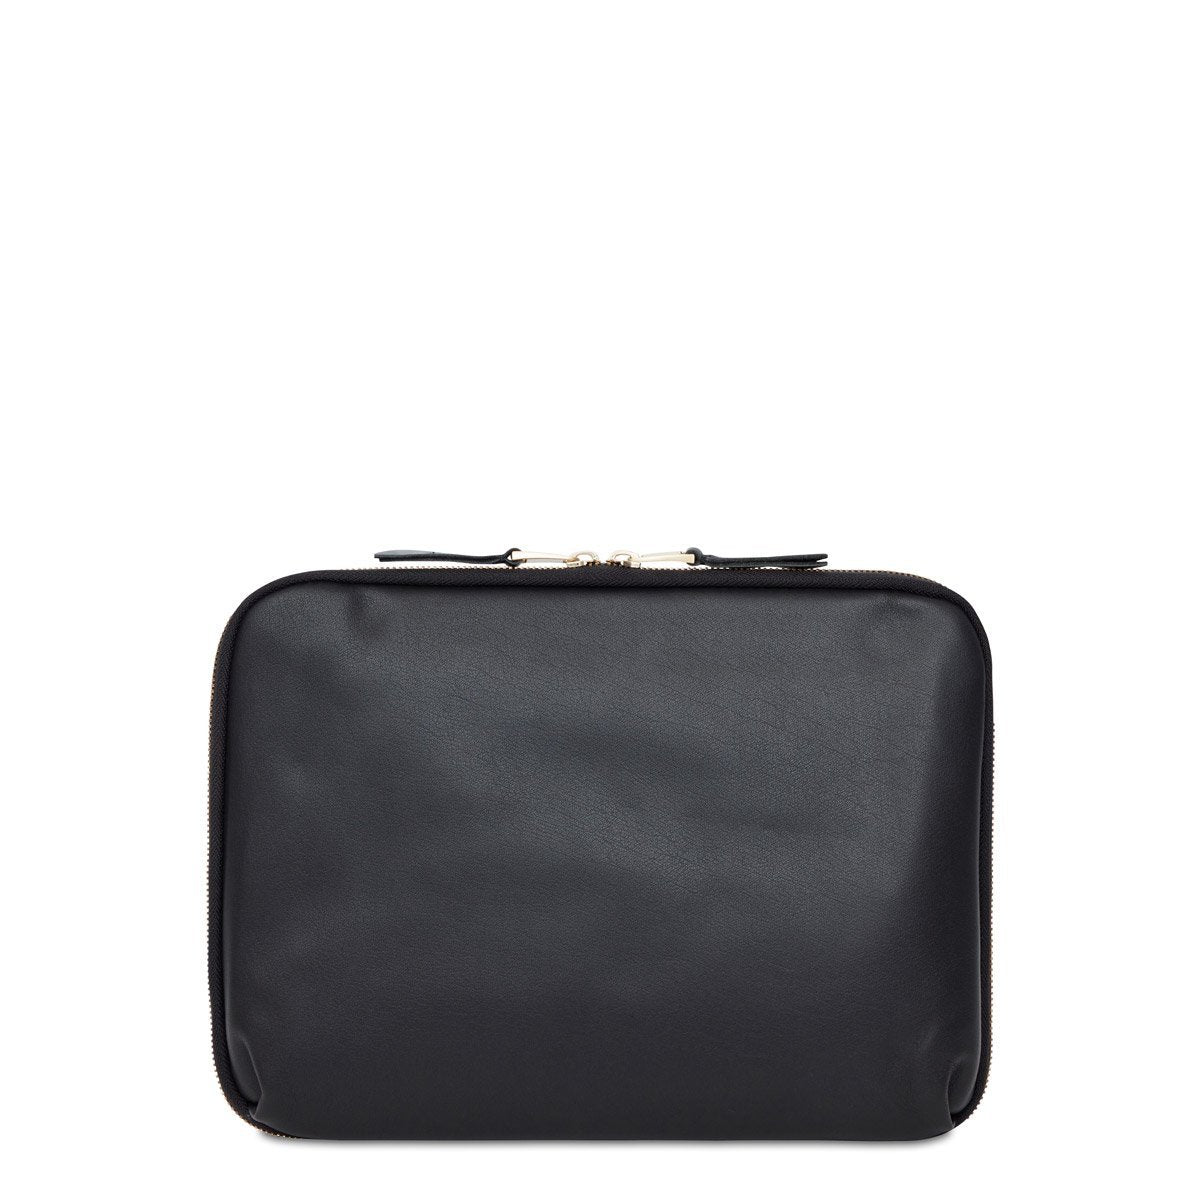 "Mayfair Luxe Knomad Organiser - 10.5"" Leather Tech Organiser - 10.5"" -  Black 